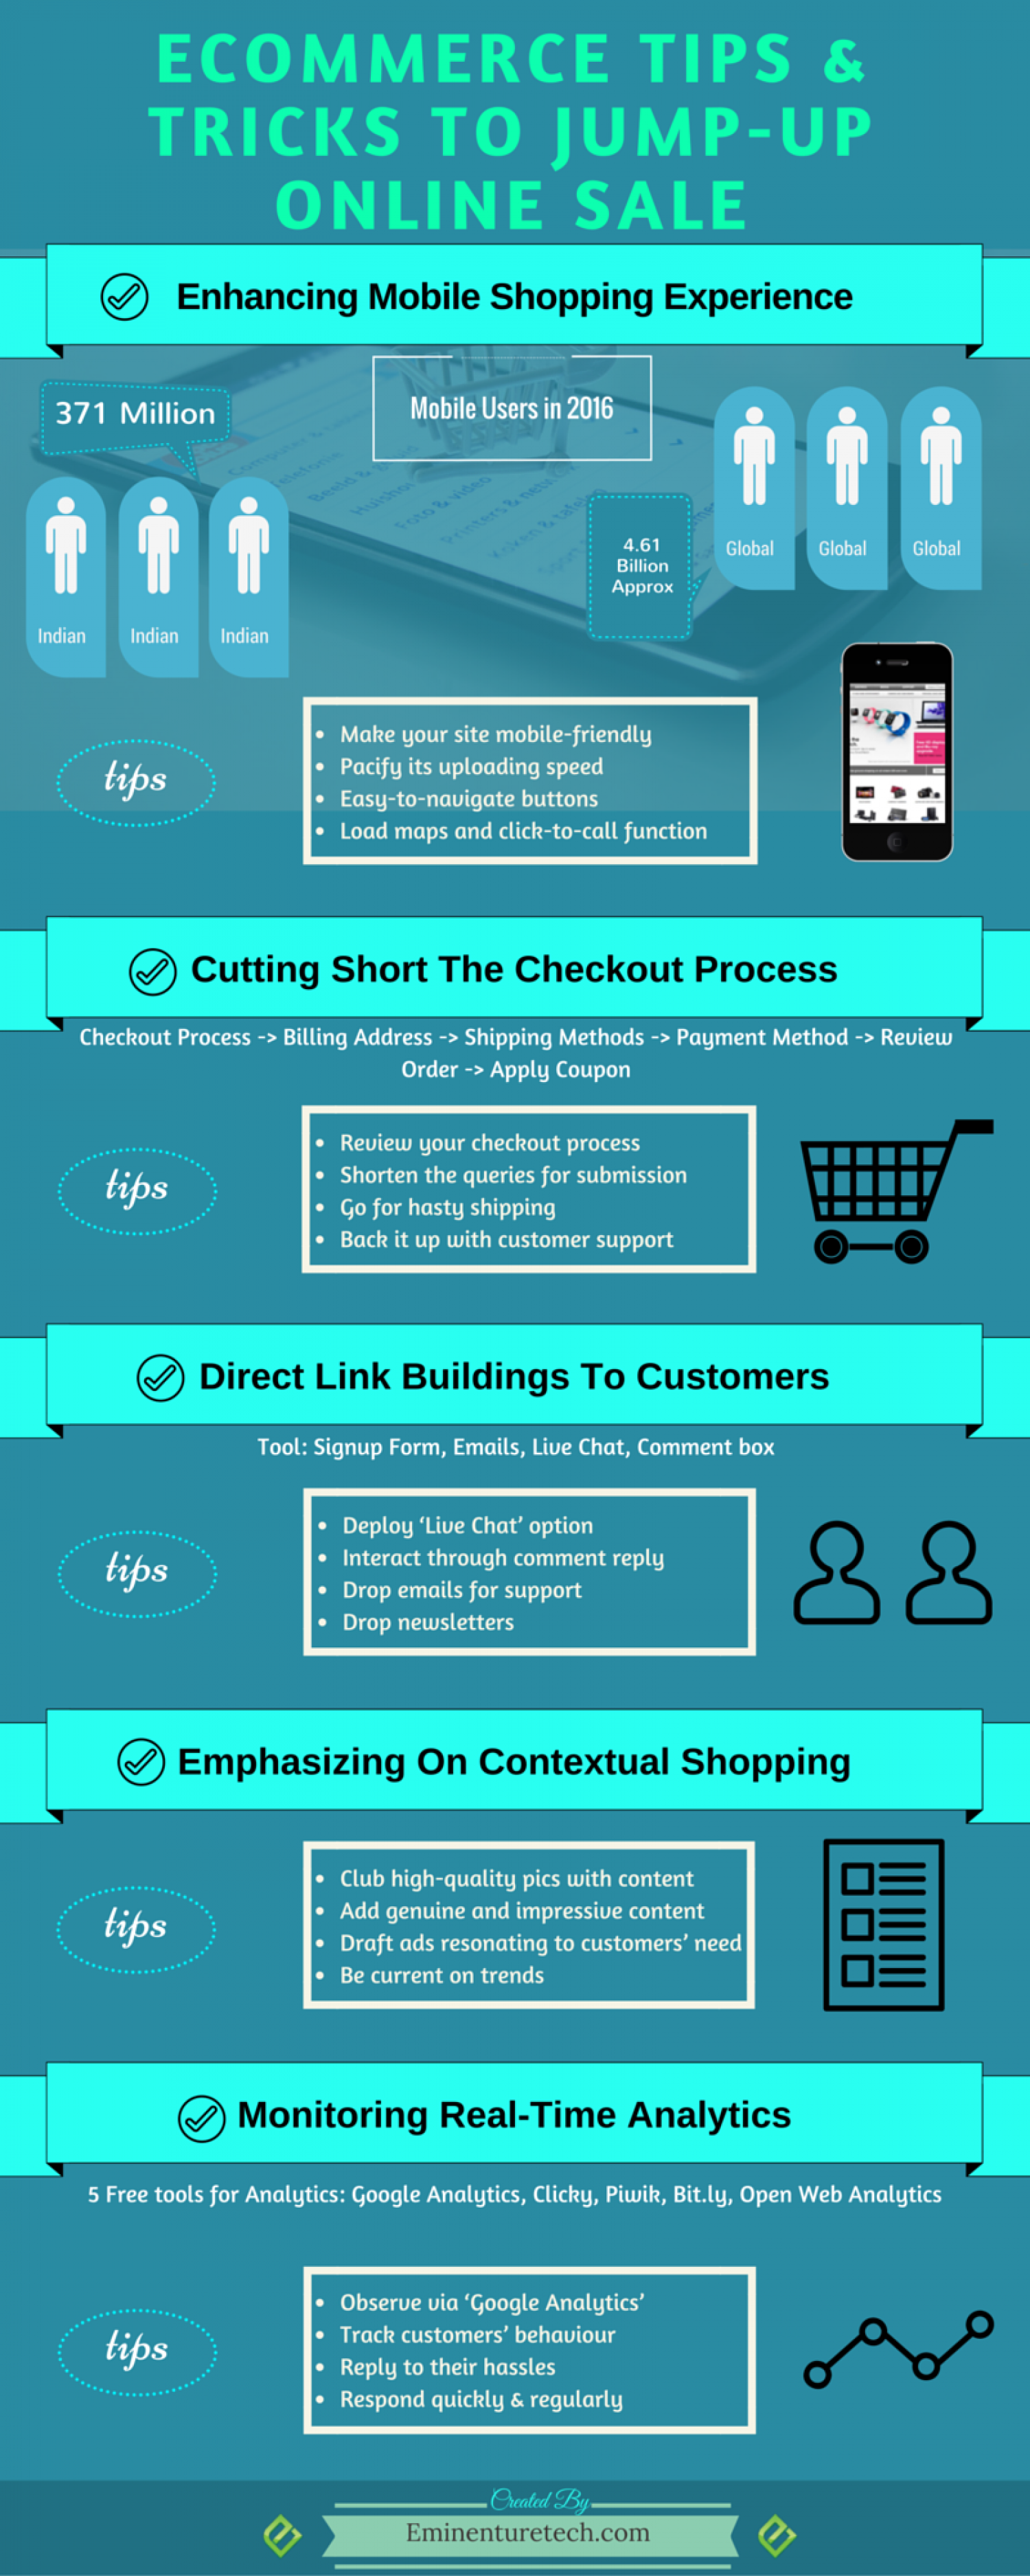 E-Commerce Tips & Tricks to Jump-up Online Sale Infographic